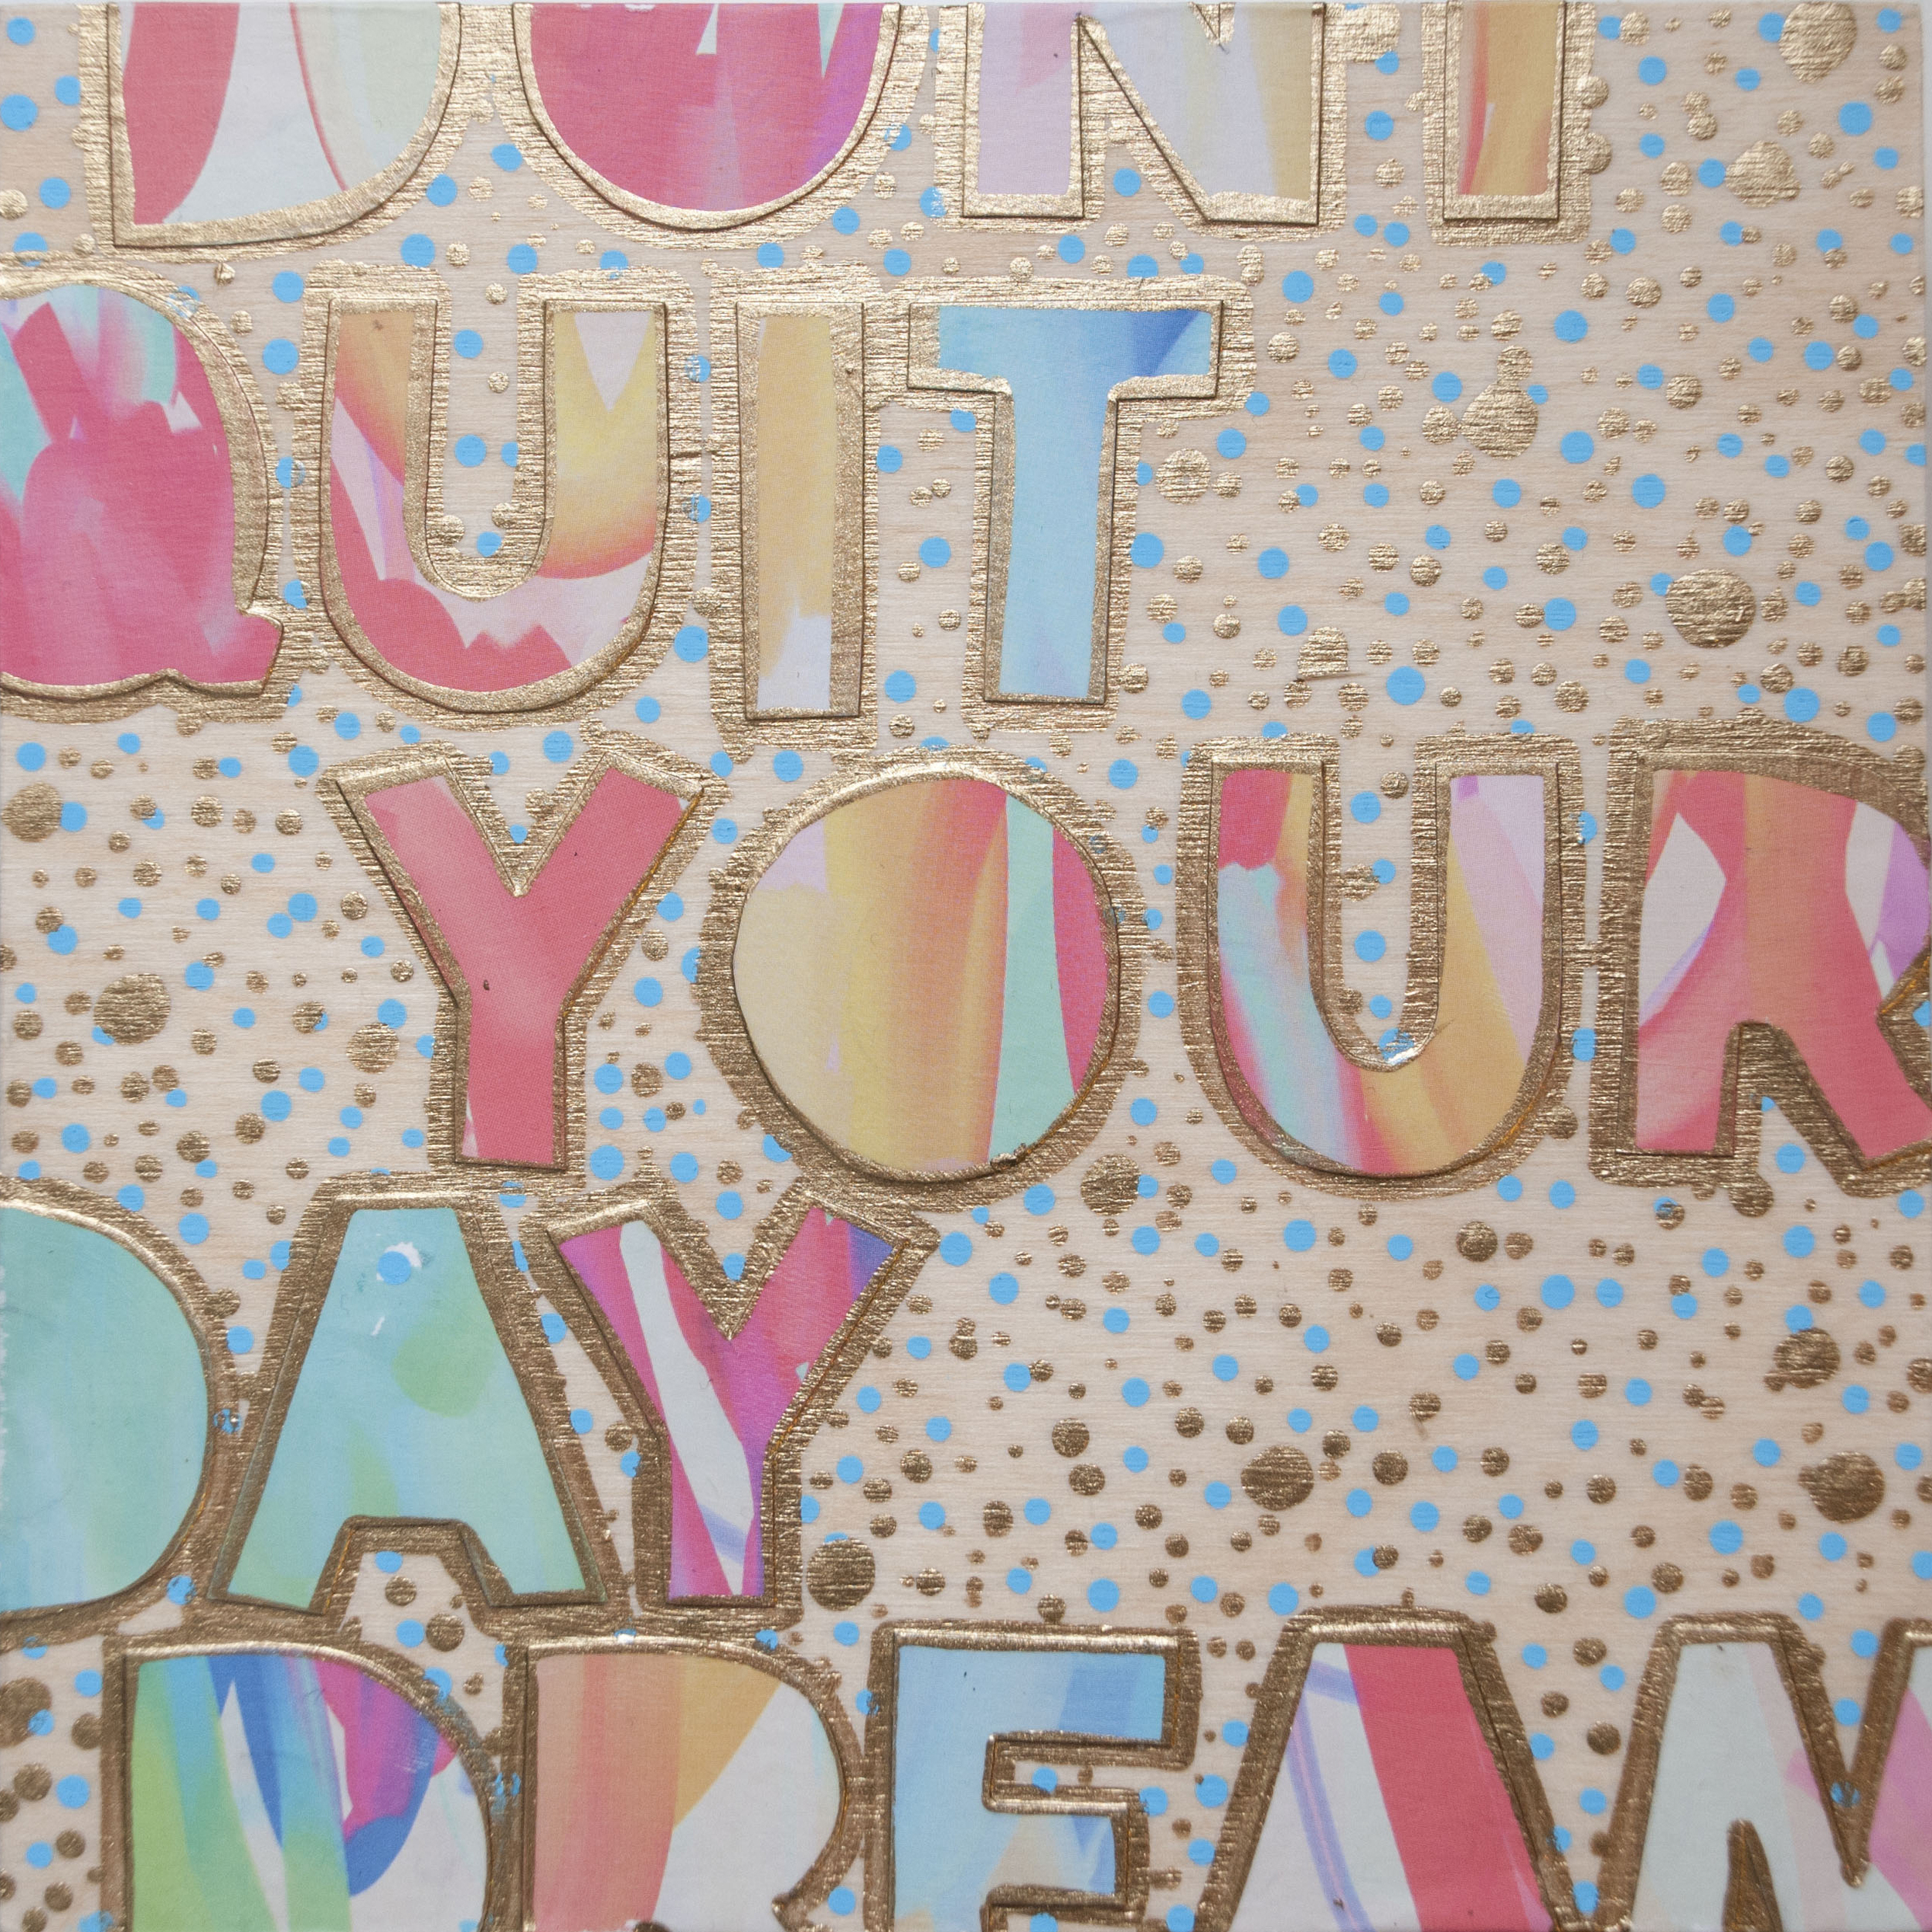 Don't Quit Your Daydream , 2016 Acrylic, enamel, and catalog pages on wood 6 x 6 x 1 5/8 inches